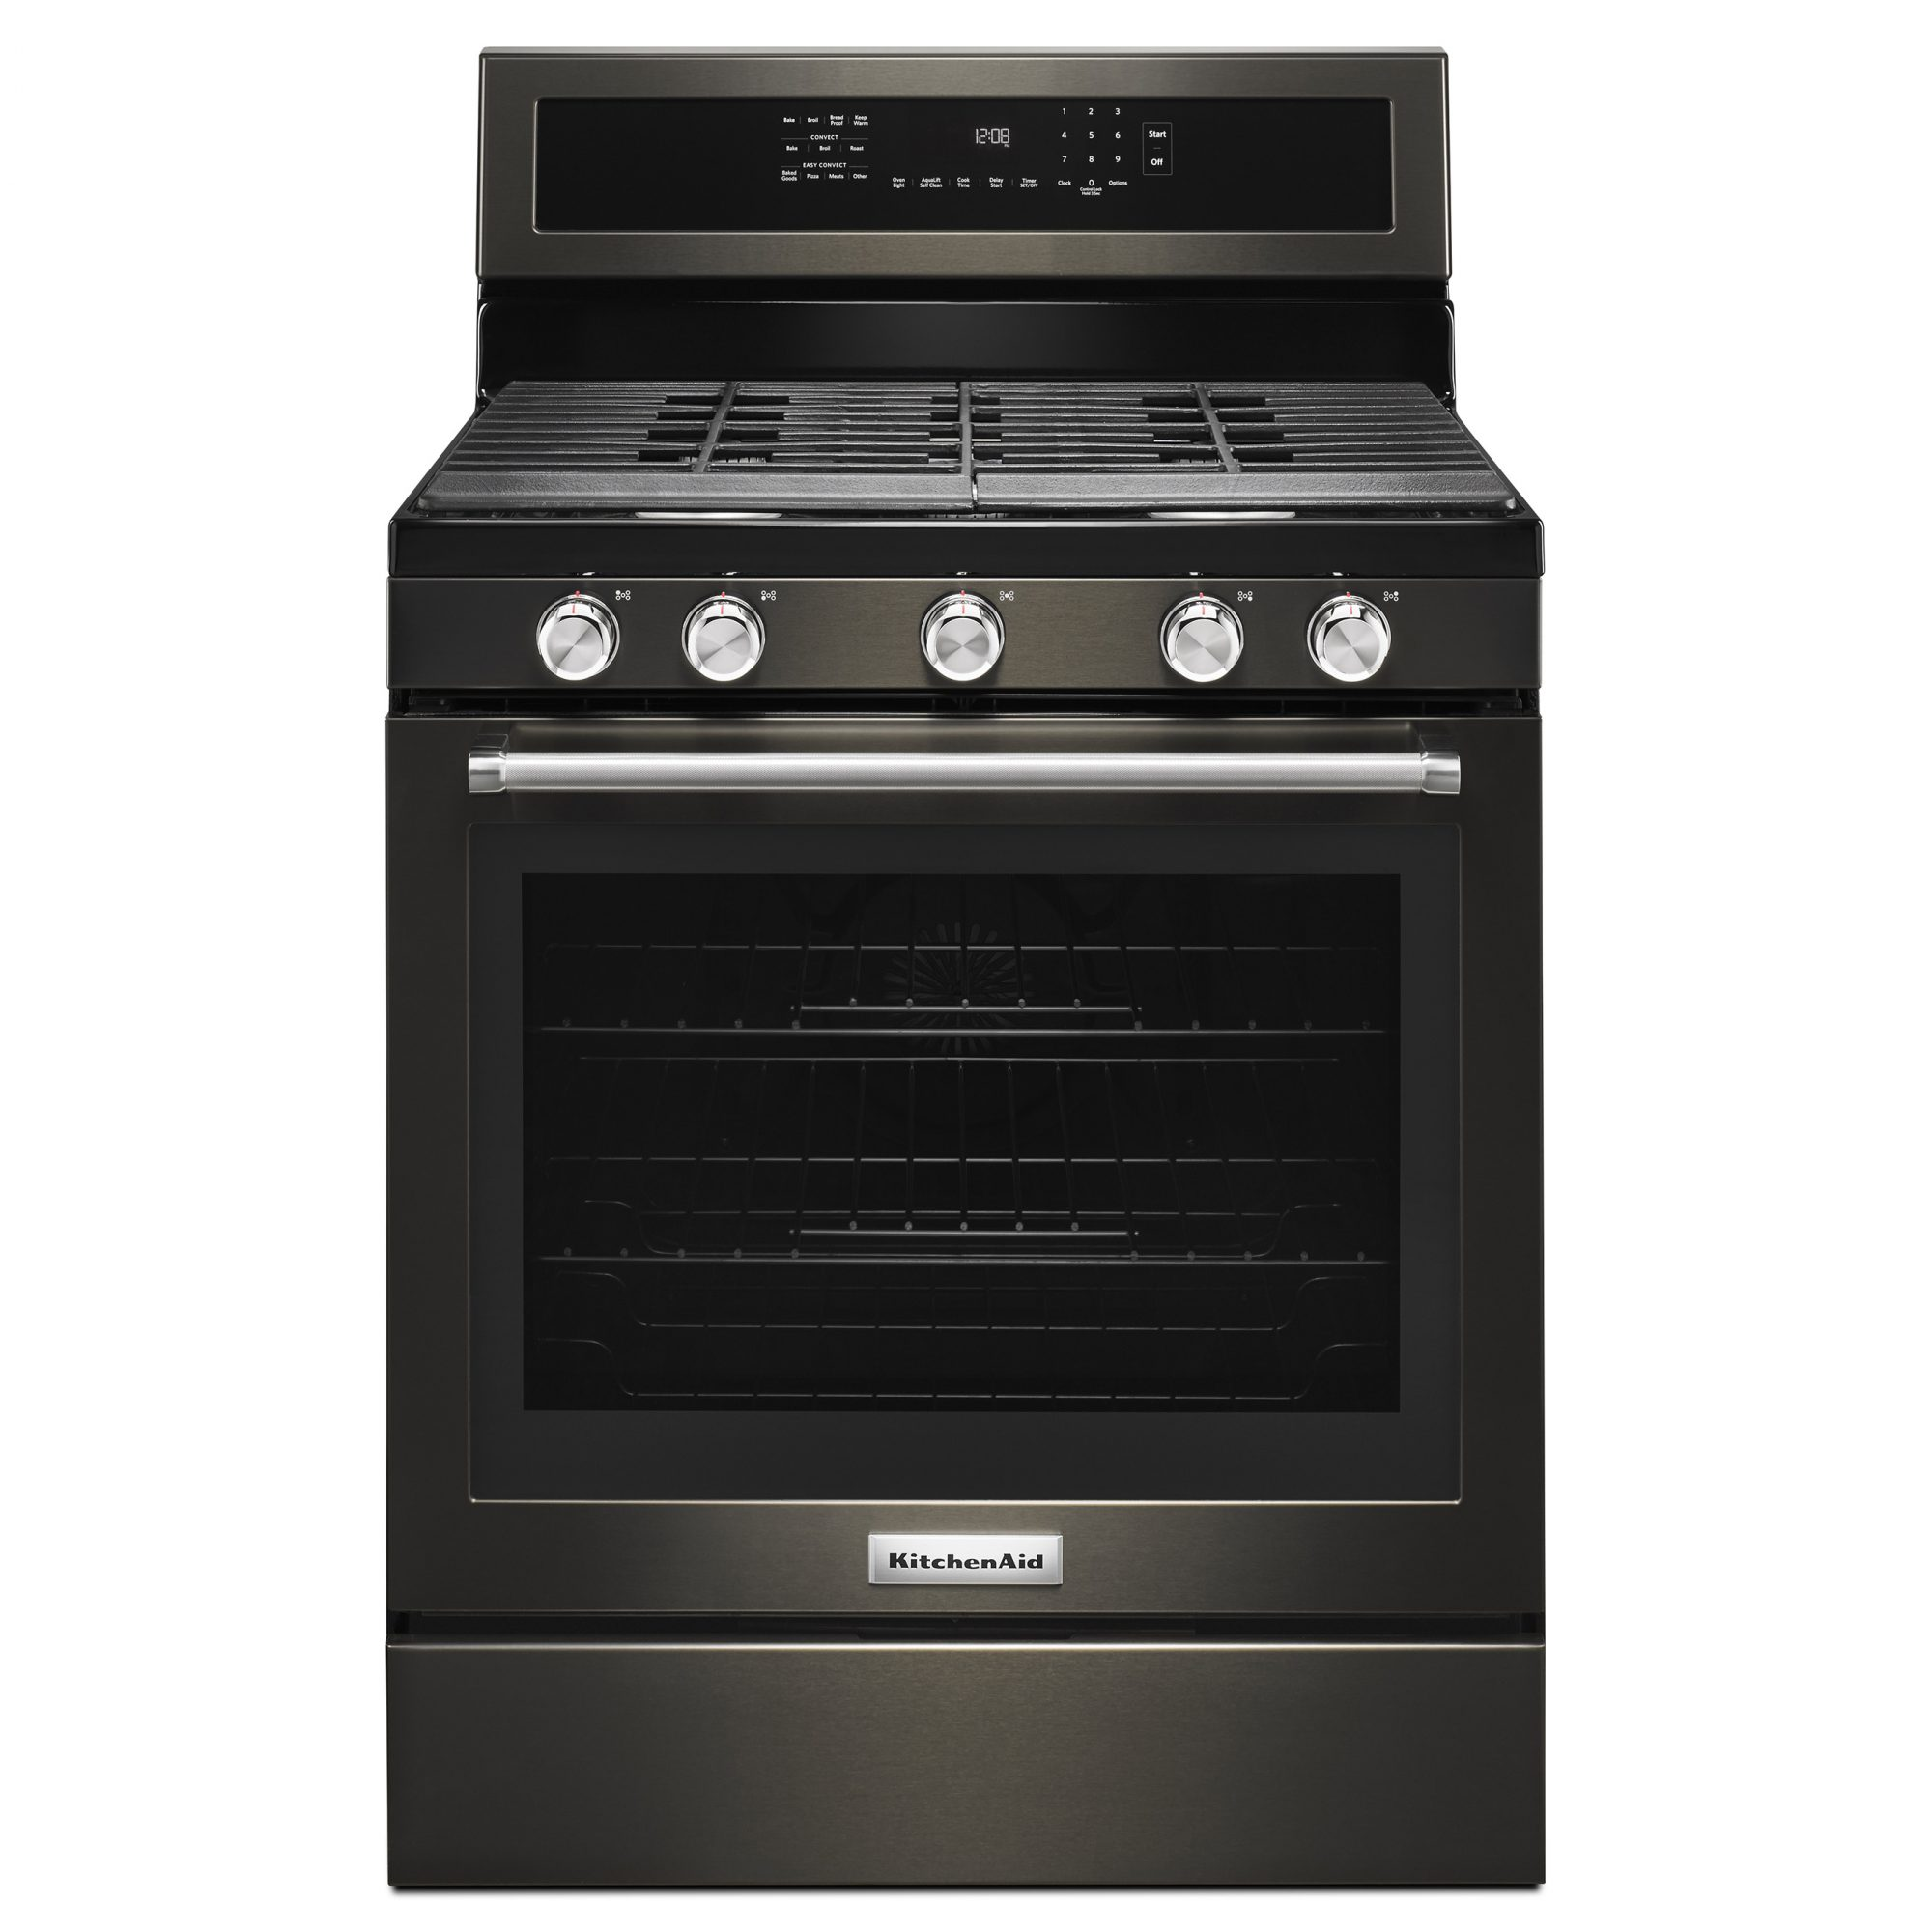 https://cdn-image.foodandwine.com/sites/default/files/1493305918/kitchenaid-matte-black-convection-range-stove-blog0417.jpg